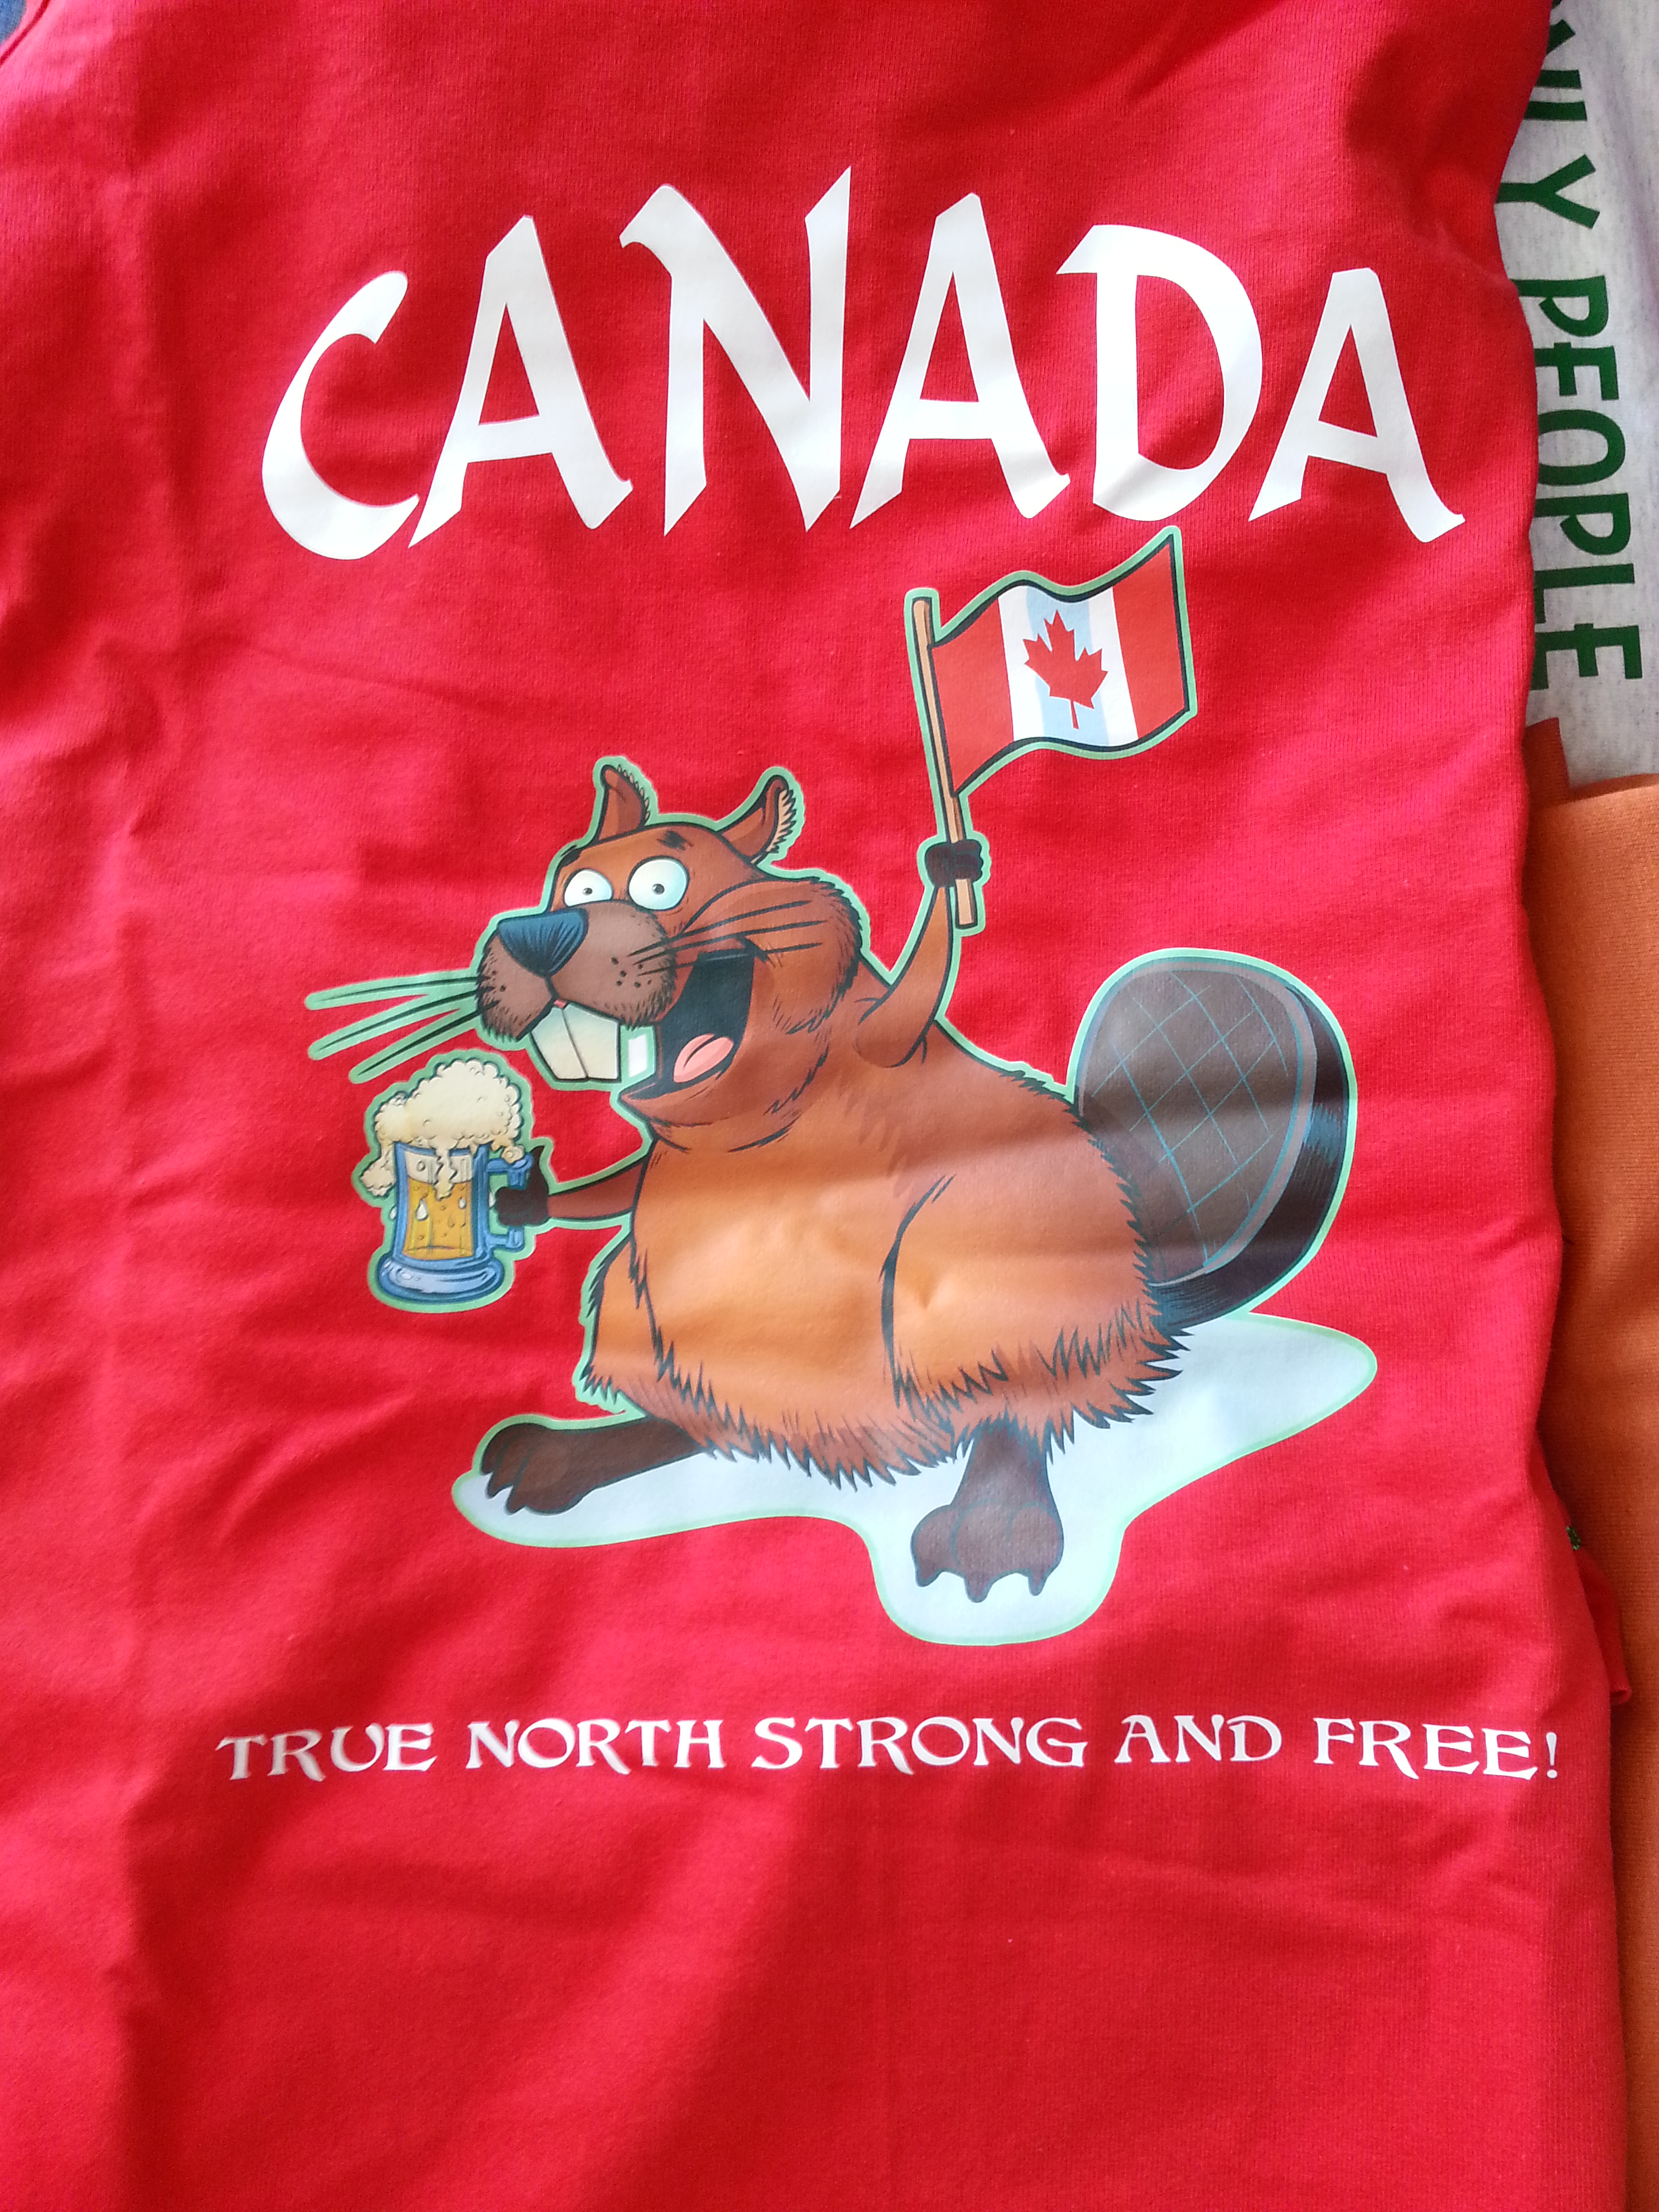 Canada Day Shirts or Tanks